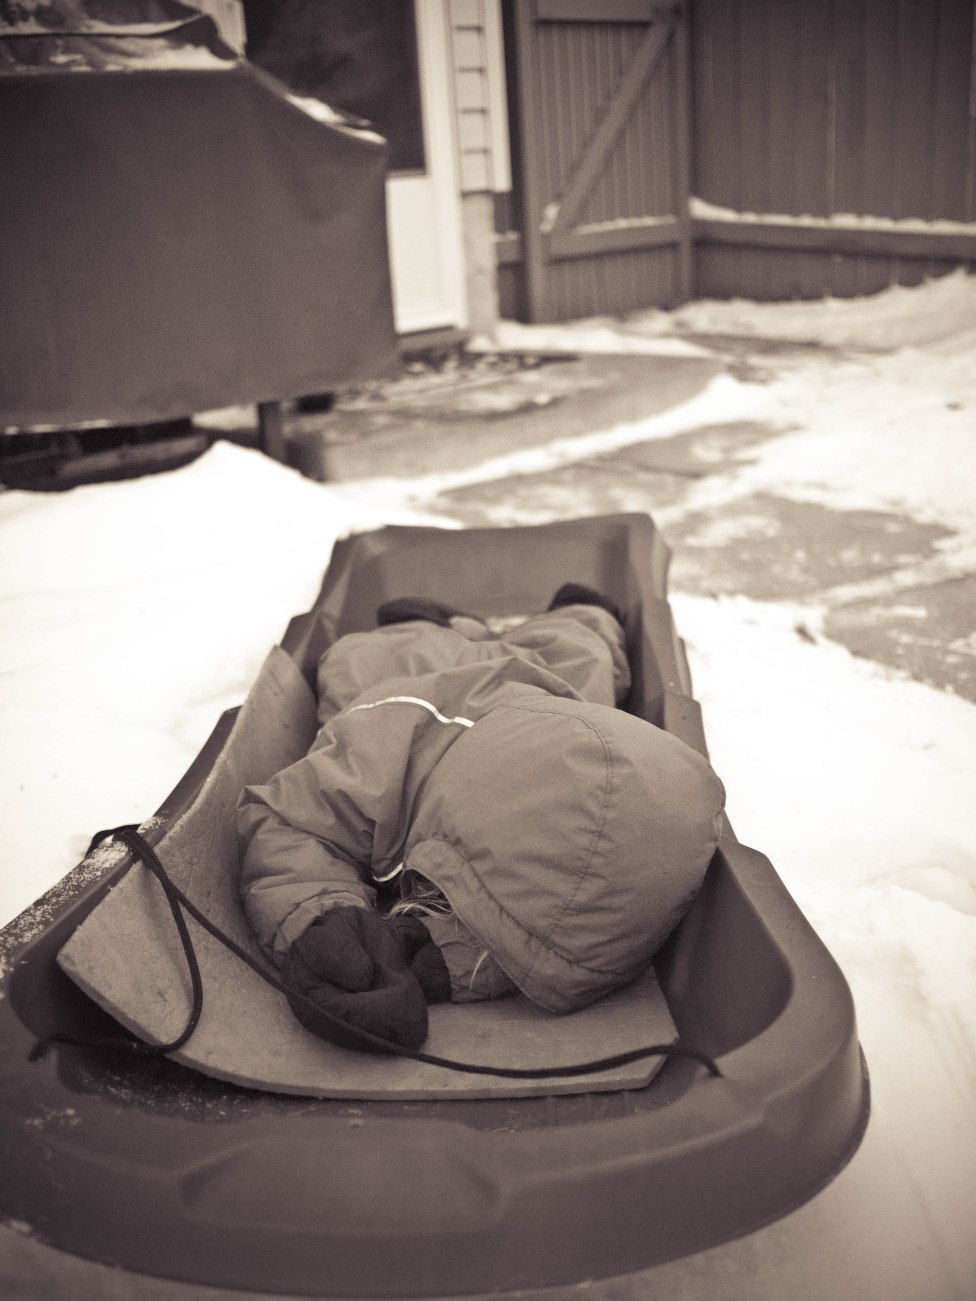 sleeping outside at -30ºC (on a camping mattress for warmth)